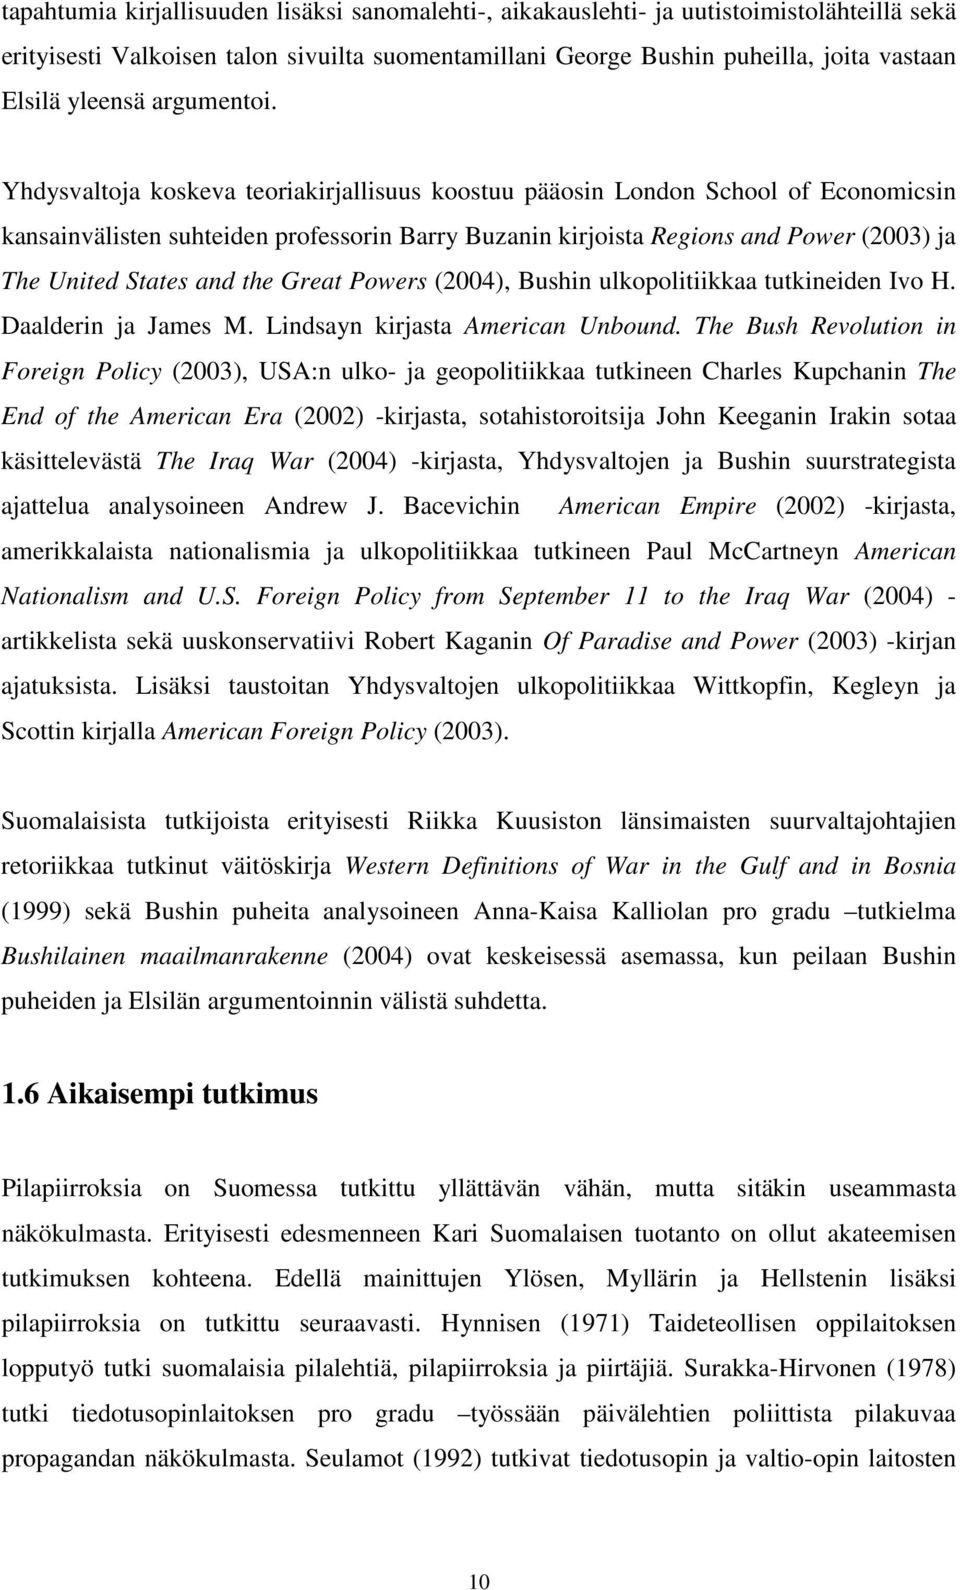 Yhdysvaltoja koskeva teoriakirjallisuus koostuu pääosin London School of Economicsin kansainvälisten suhteiden professorin Barry Buzanin kirjoista Regions and Power (2003) ja The United States and